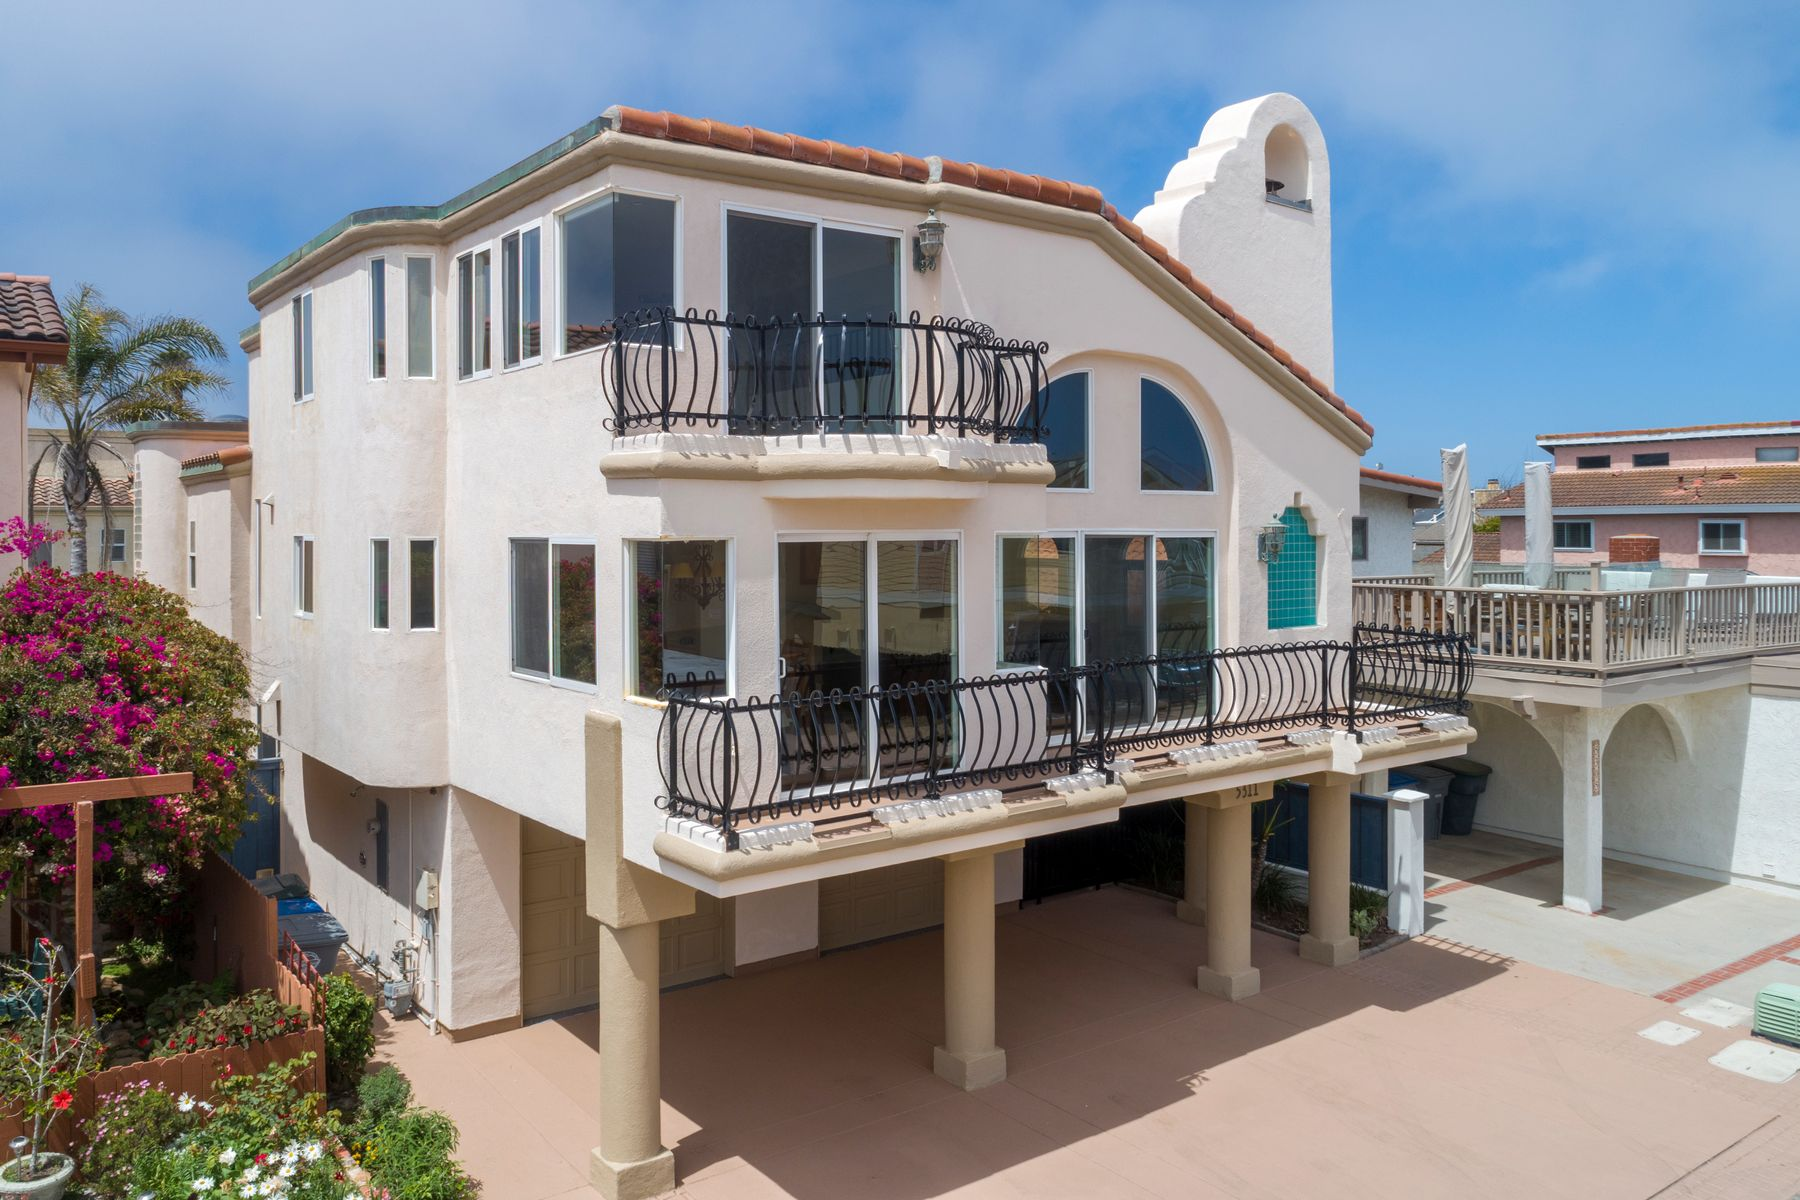 Single Family Homes for Sale at Gorgeous Beach House on Mandalay Shores 5311 Seabreeze Way Oxnard, California 93035 United States